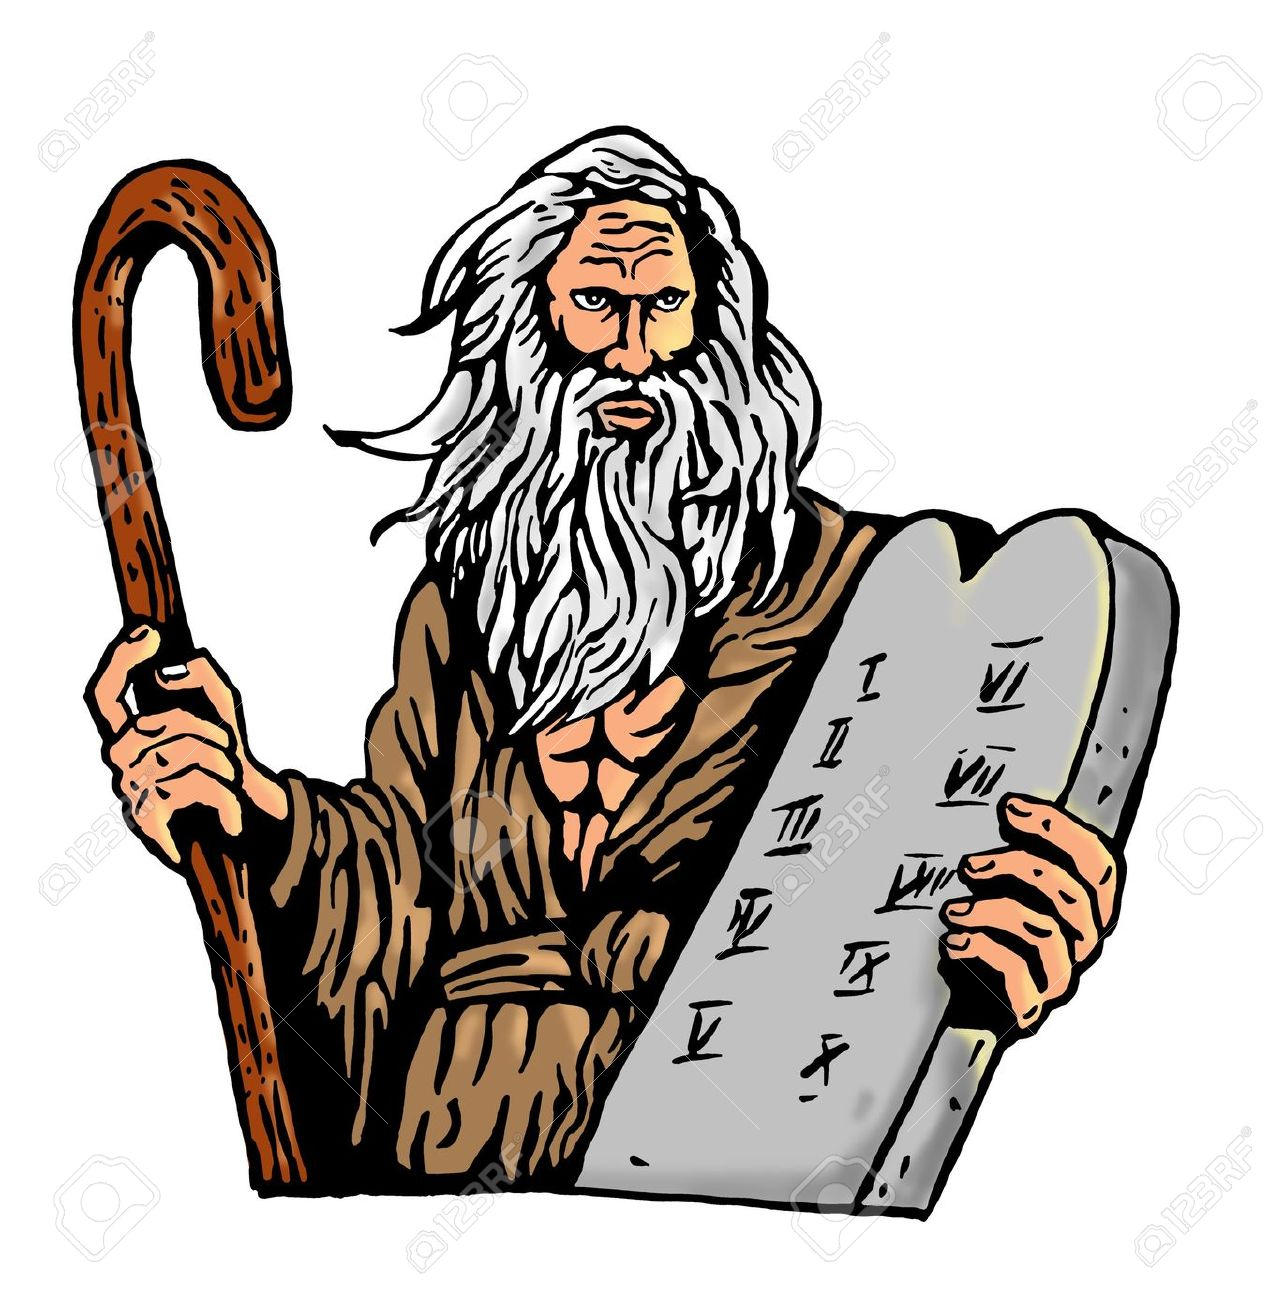 Moses Ten Commandments Clipart .-Moses Ten Commandments Clipart .-12